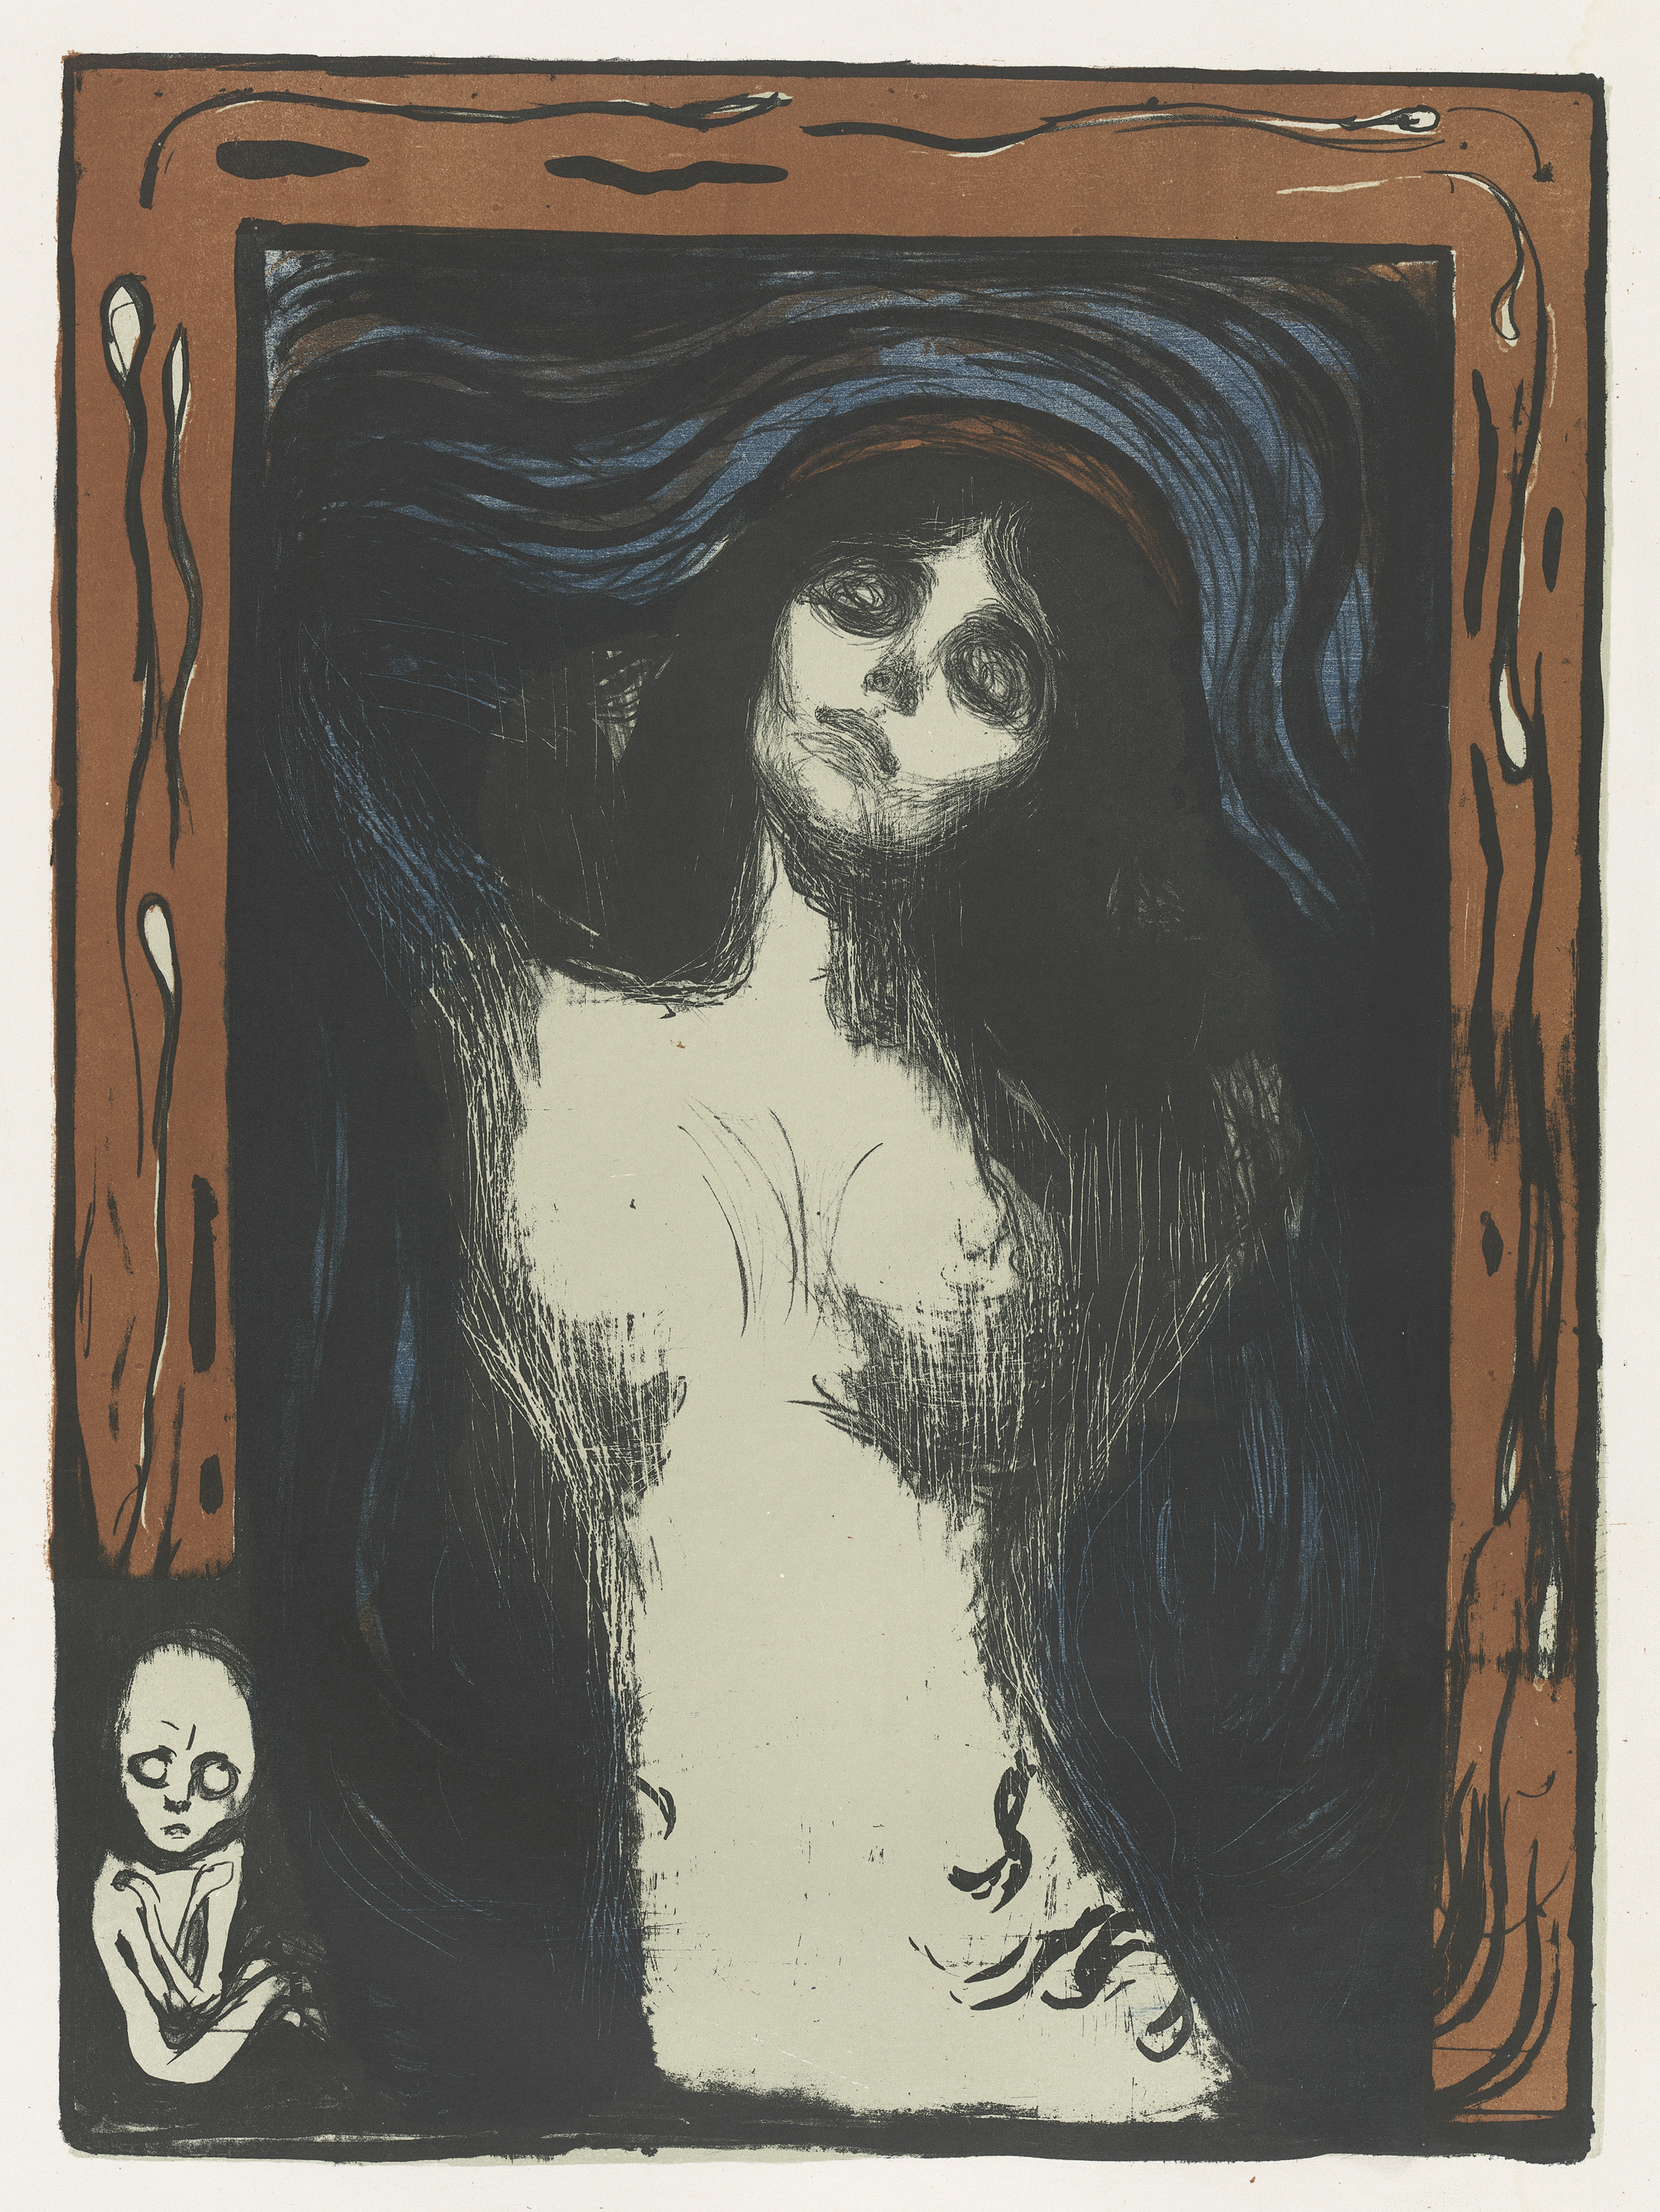 Edvard Munch Madonna, 1895, printed 1913/1914 color lithograph overall: 60.01 x 44.13 cm (23 5/8 x 17 3/8 in.) National Gallery of Art, Washington, Gift of The Epstein Family Collection